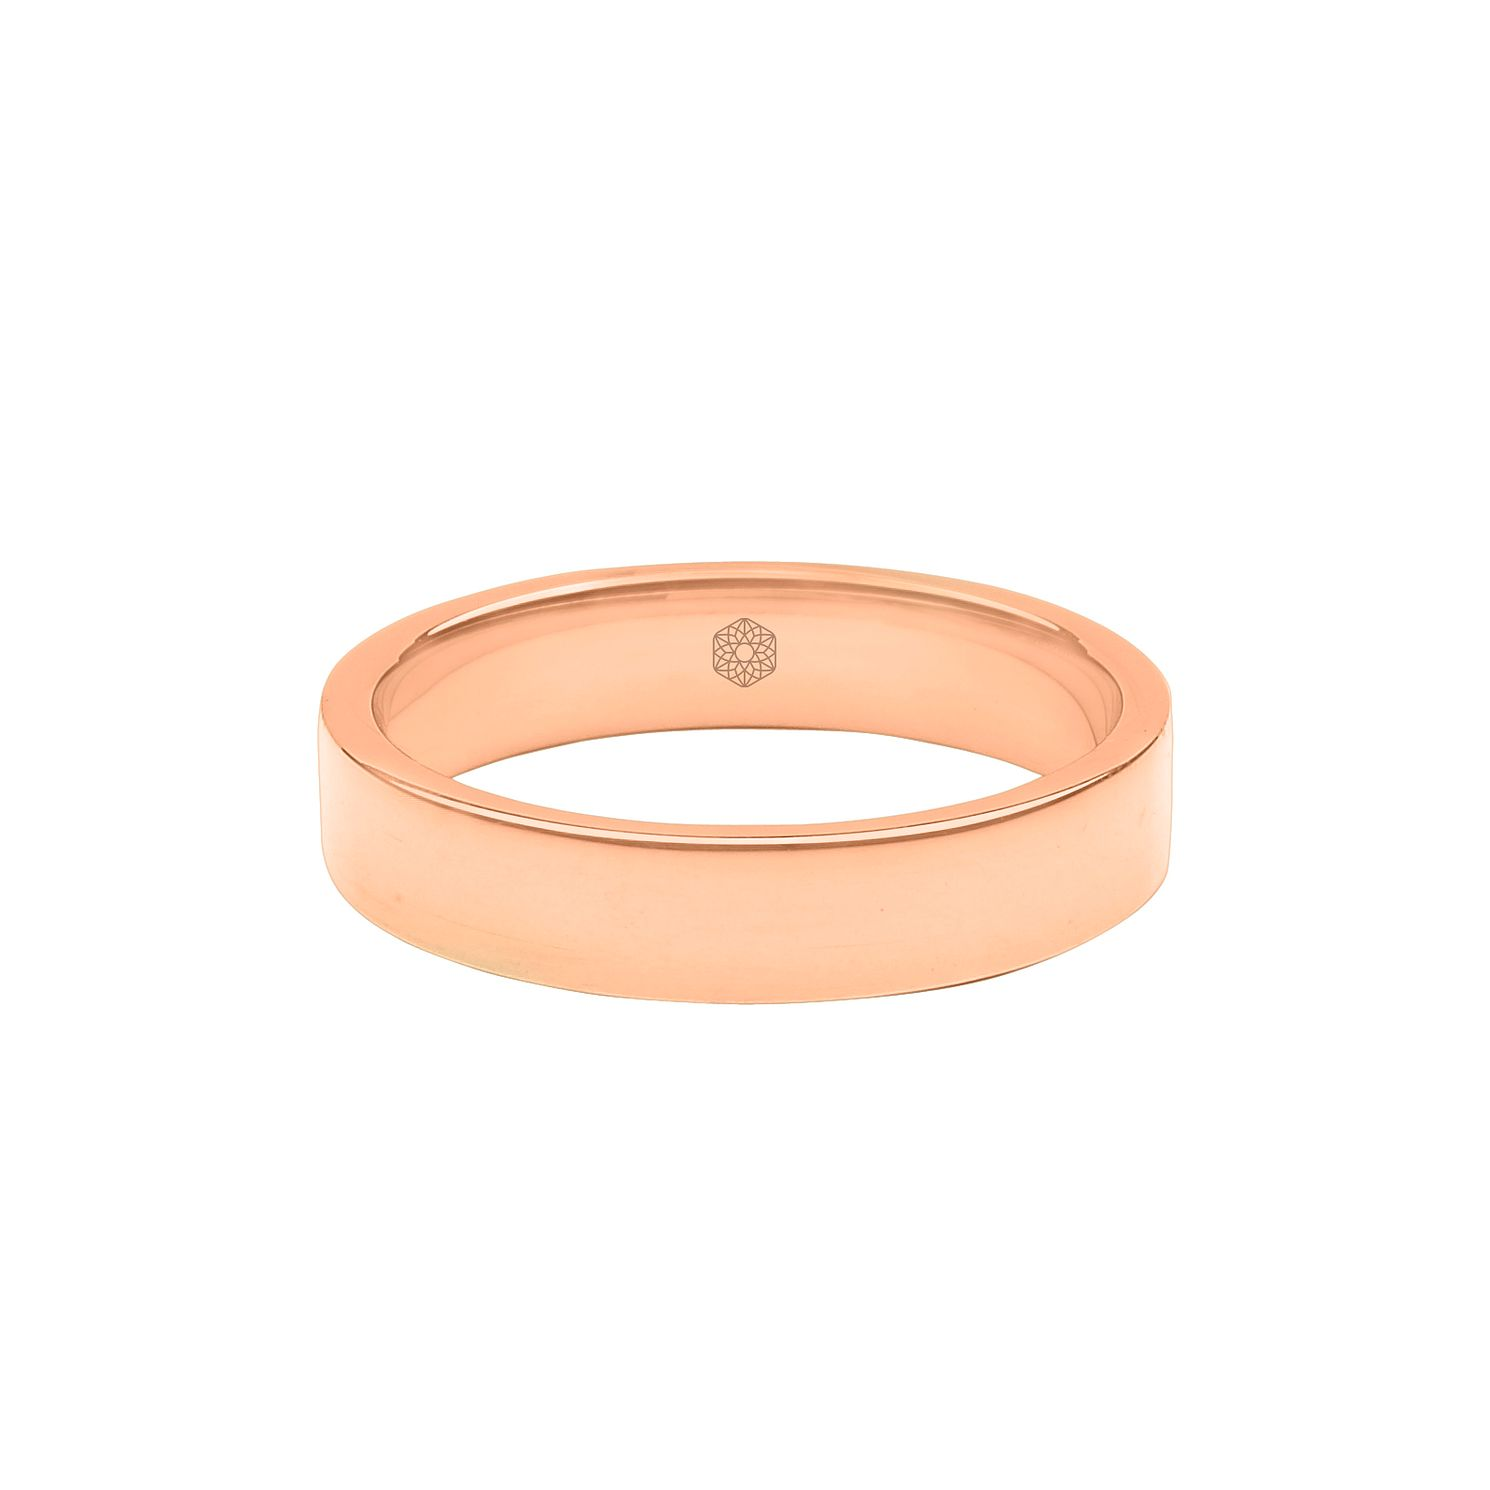 Baird Mint 18ct Rose Gold Blush 4mm Flat Ring - Product number 8168393